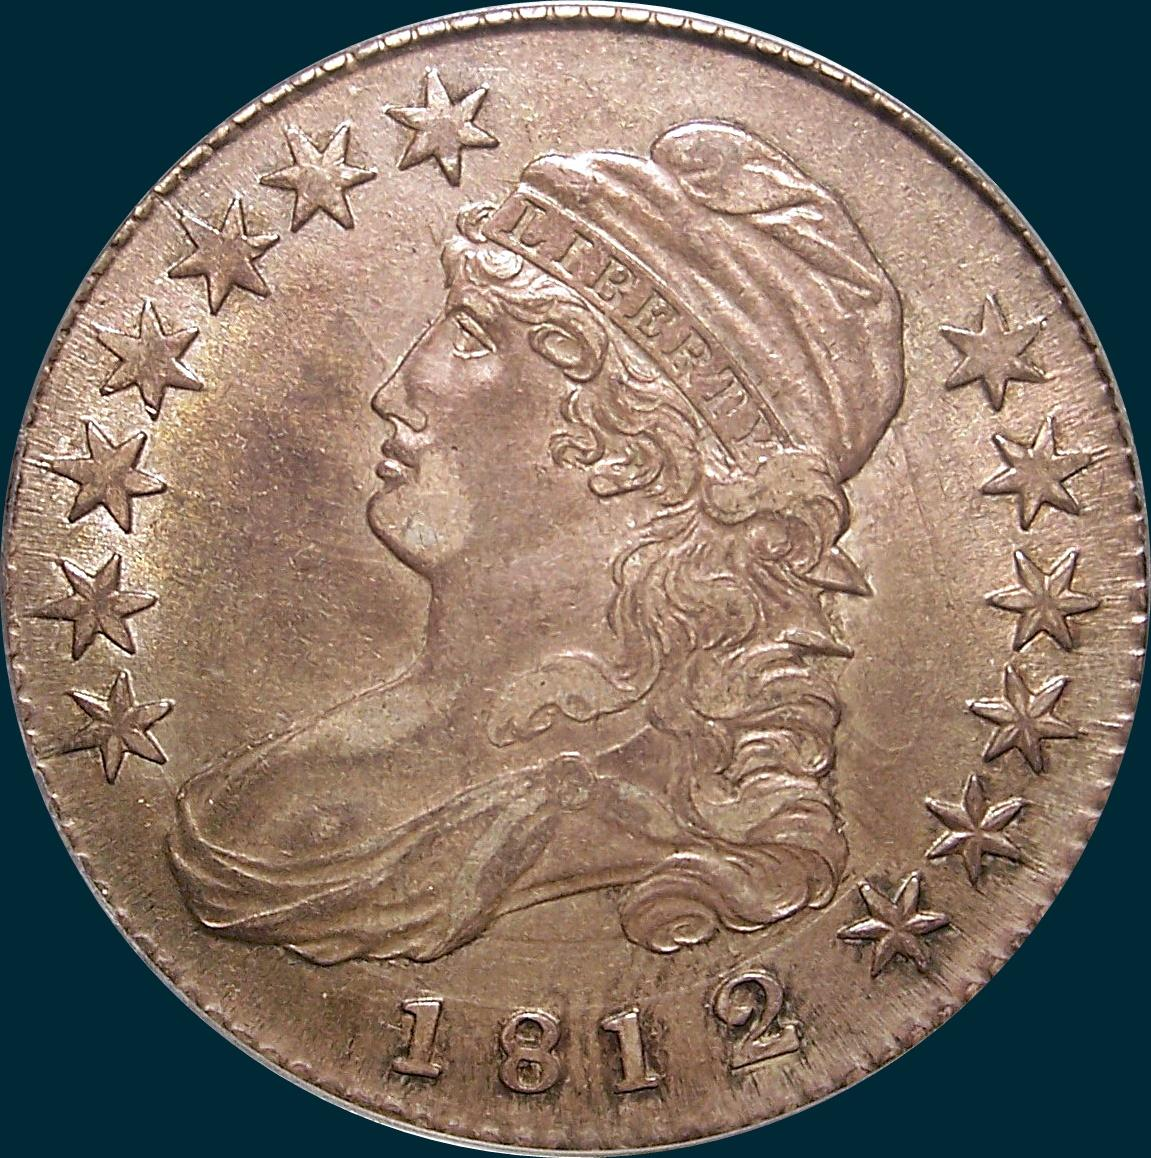 1812, O-102, 2/1, or 12/11, 12 over 11, 2 over 1, Overdate, Small 8, Capped Bust, Half Dollar